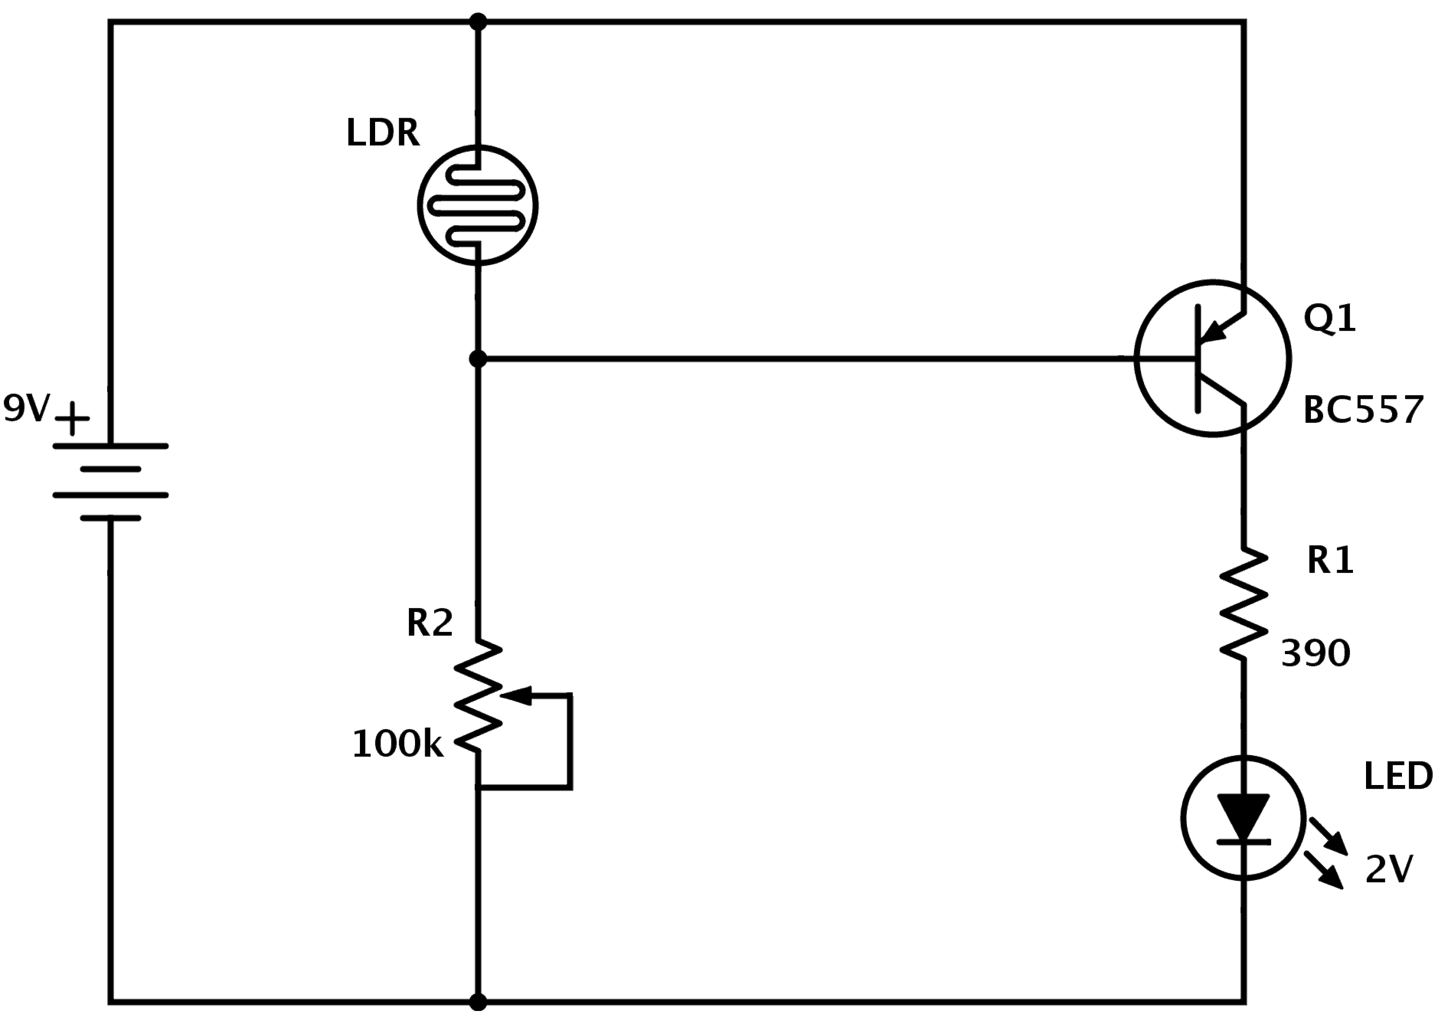 Ldr Circuit Diagram Build Electronic Circuits Automation And Controls How To Test Whether A Sensor Has Pnp Or Npn With Transistor Dark Detector